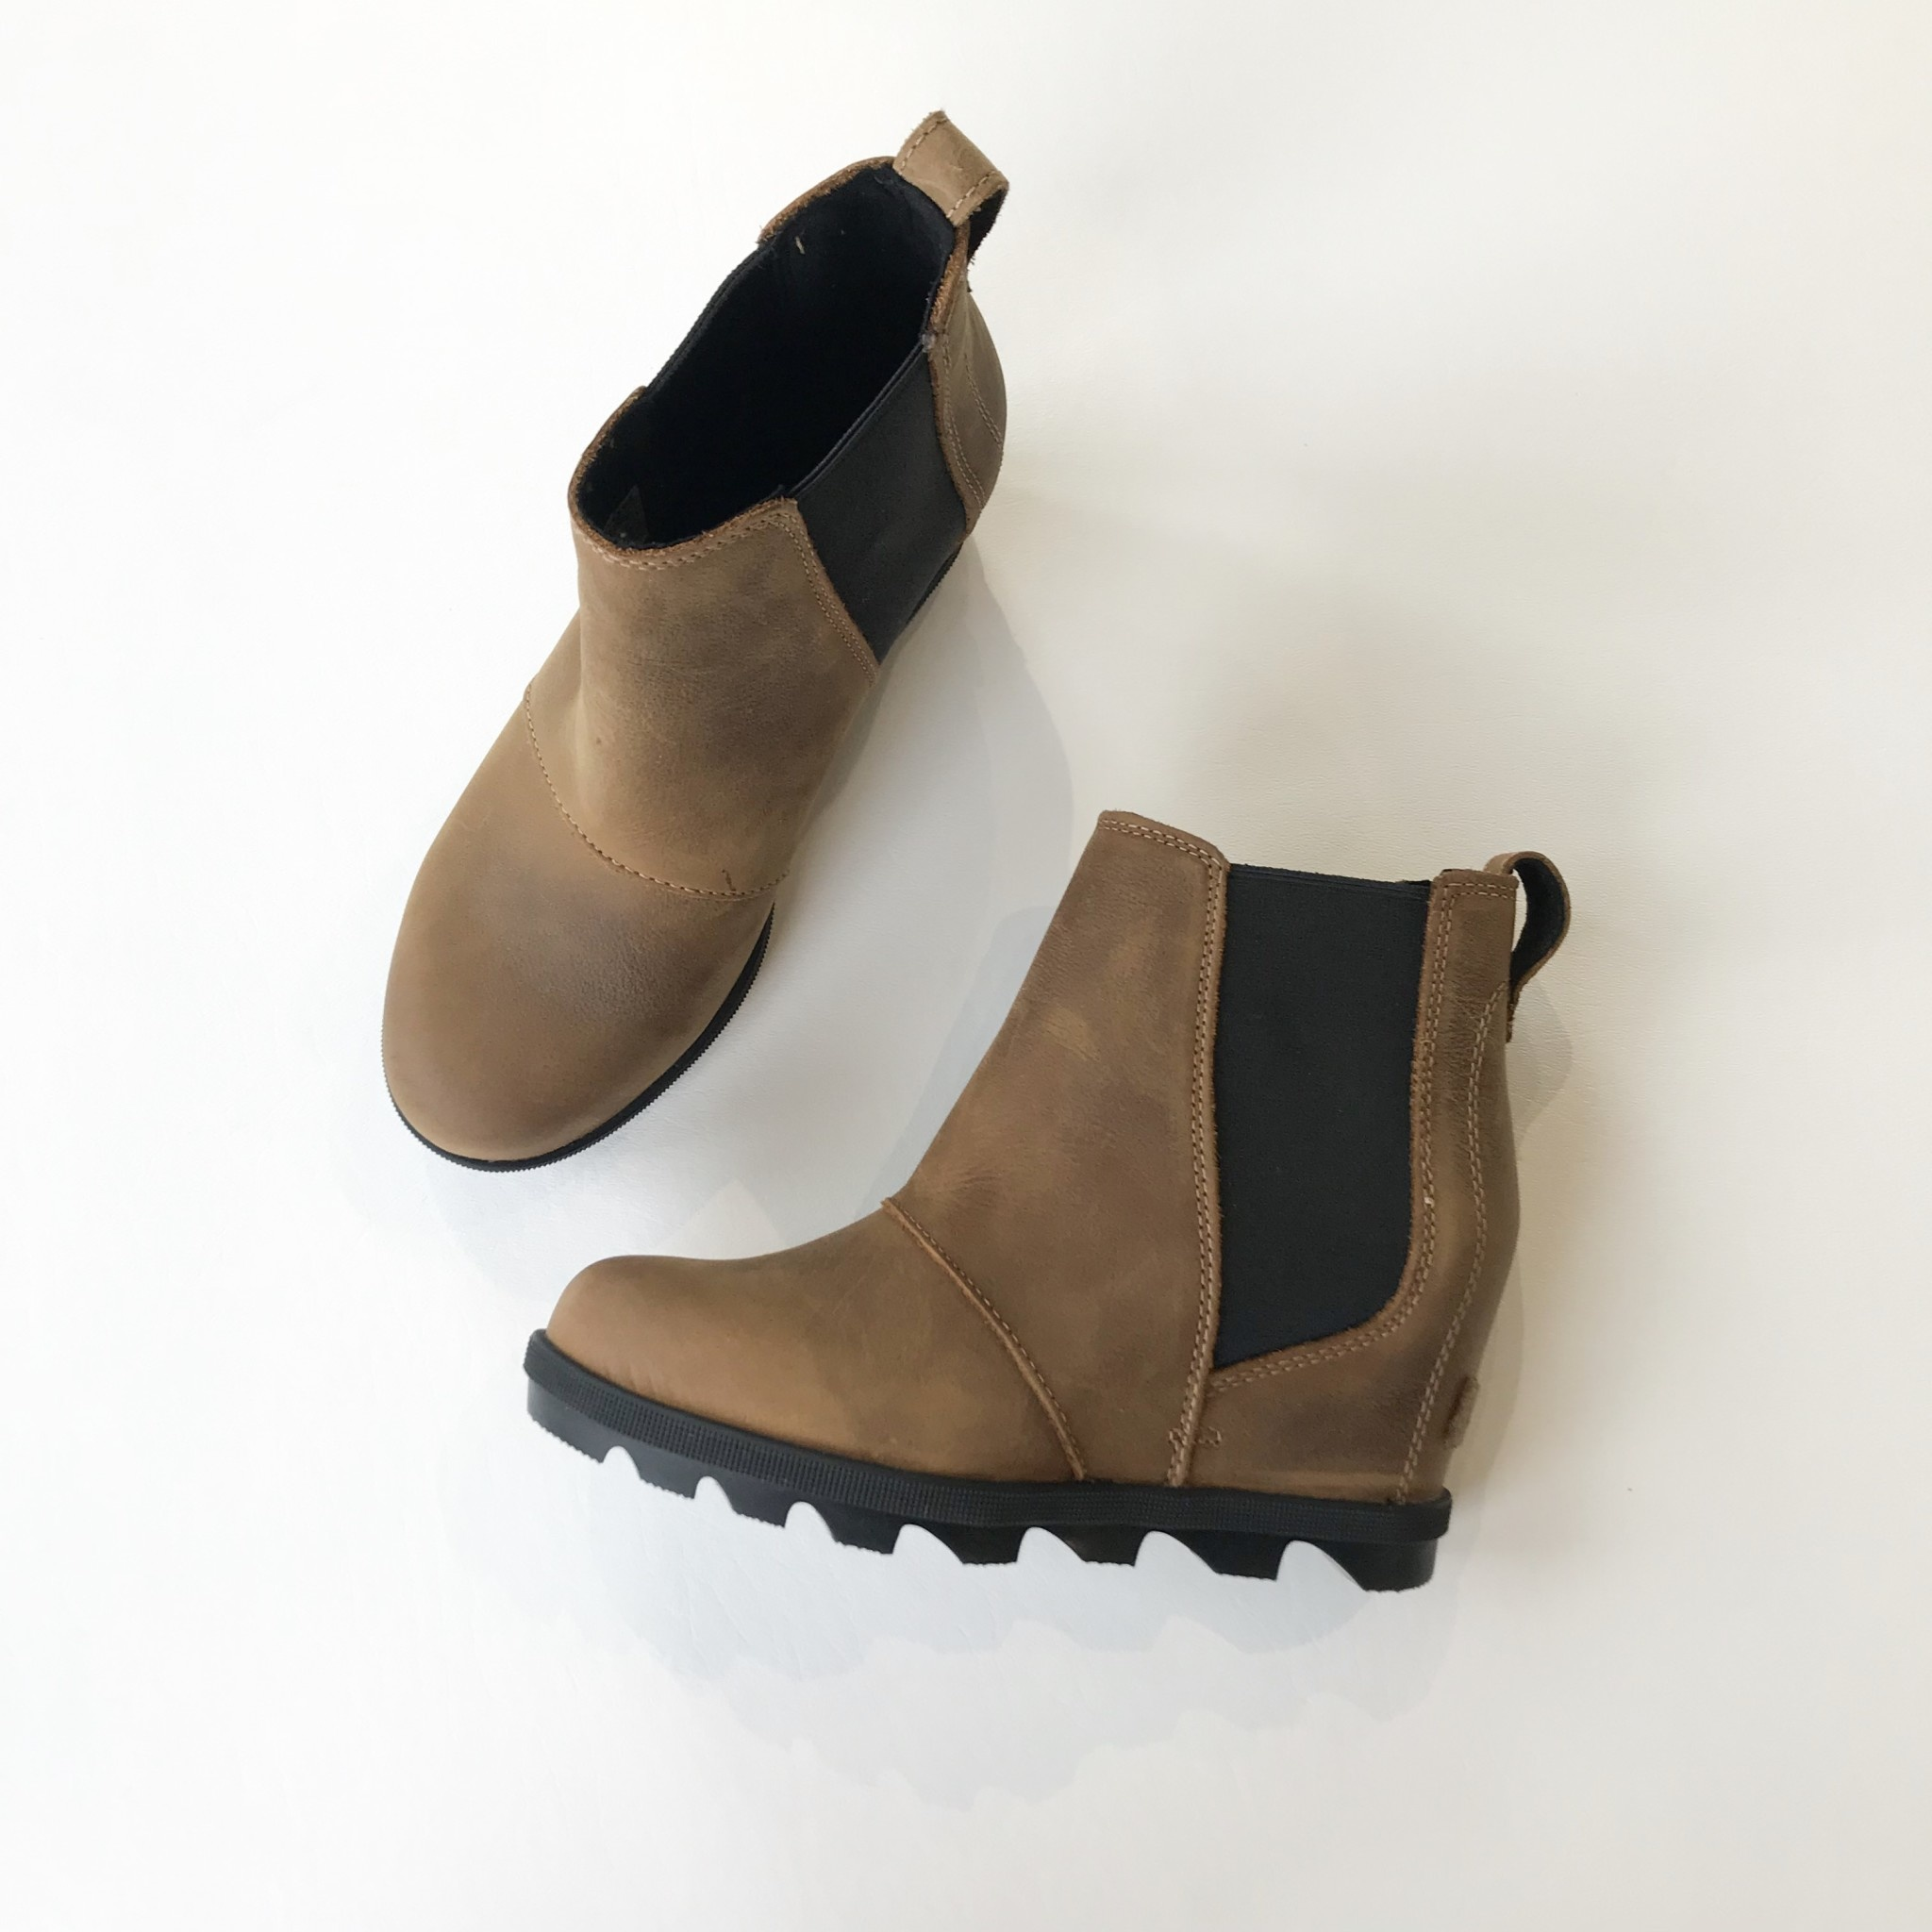 Sorel joan of arctic wedge II chelsea